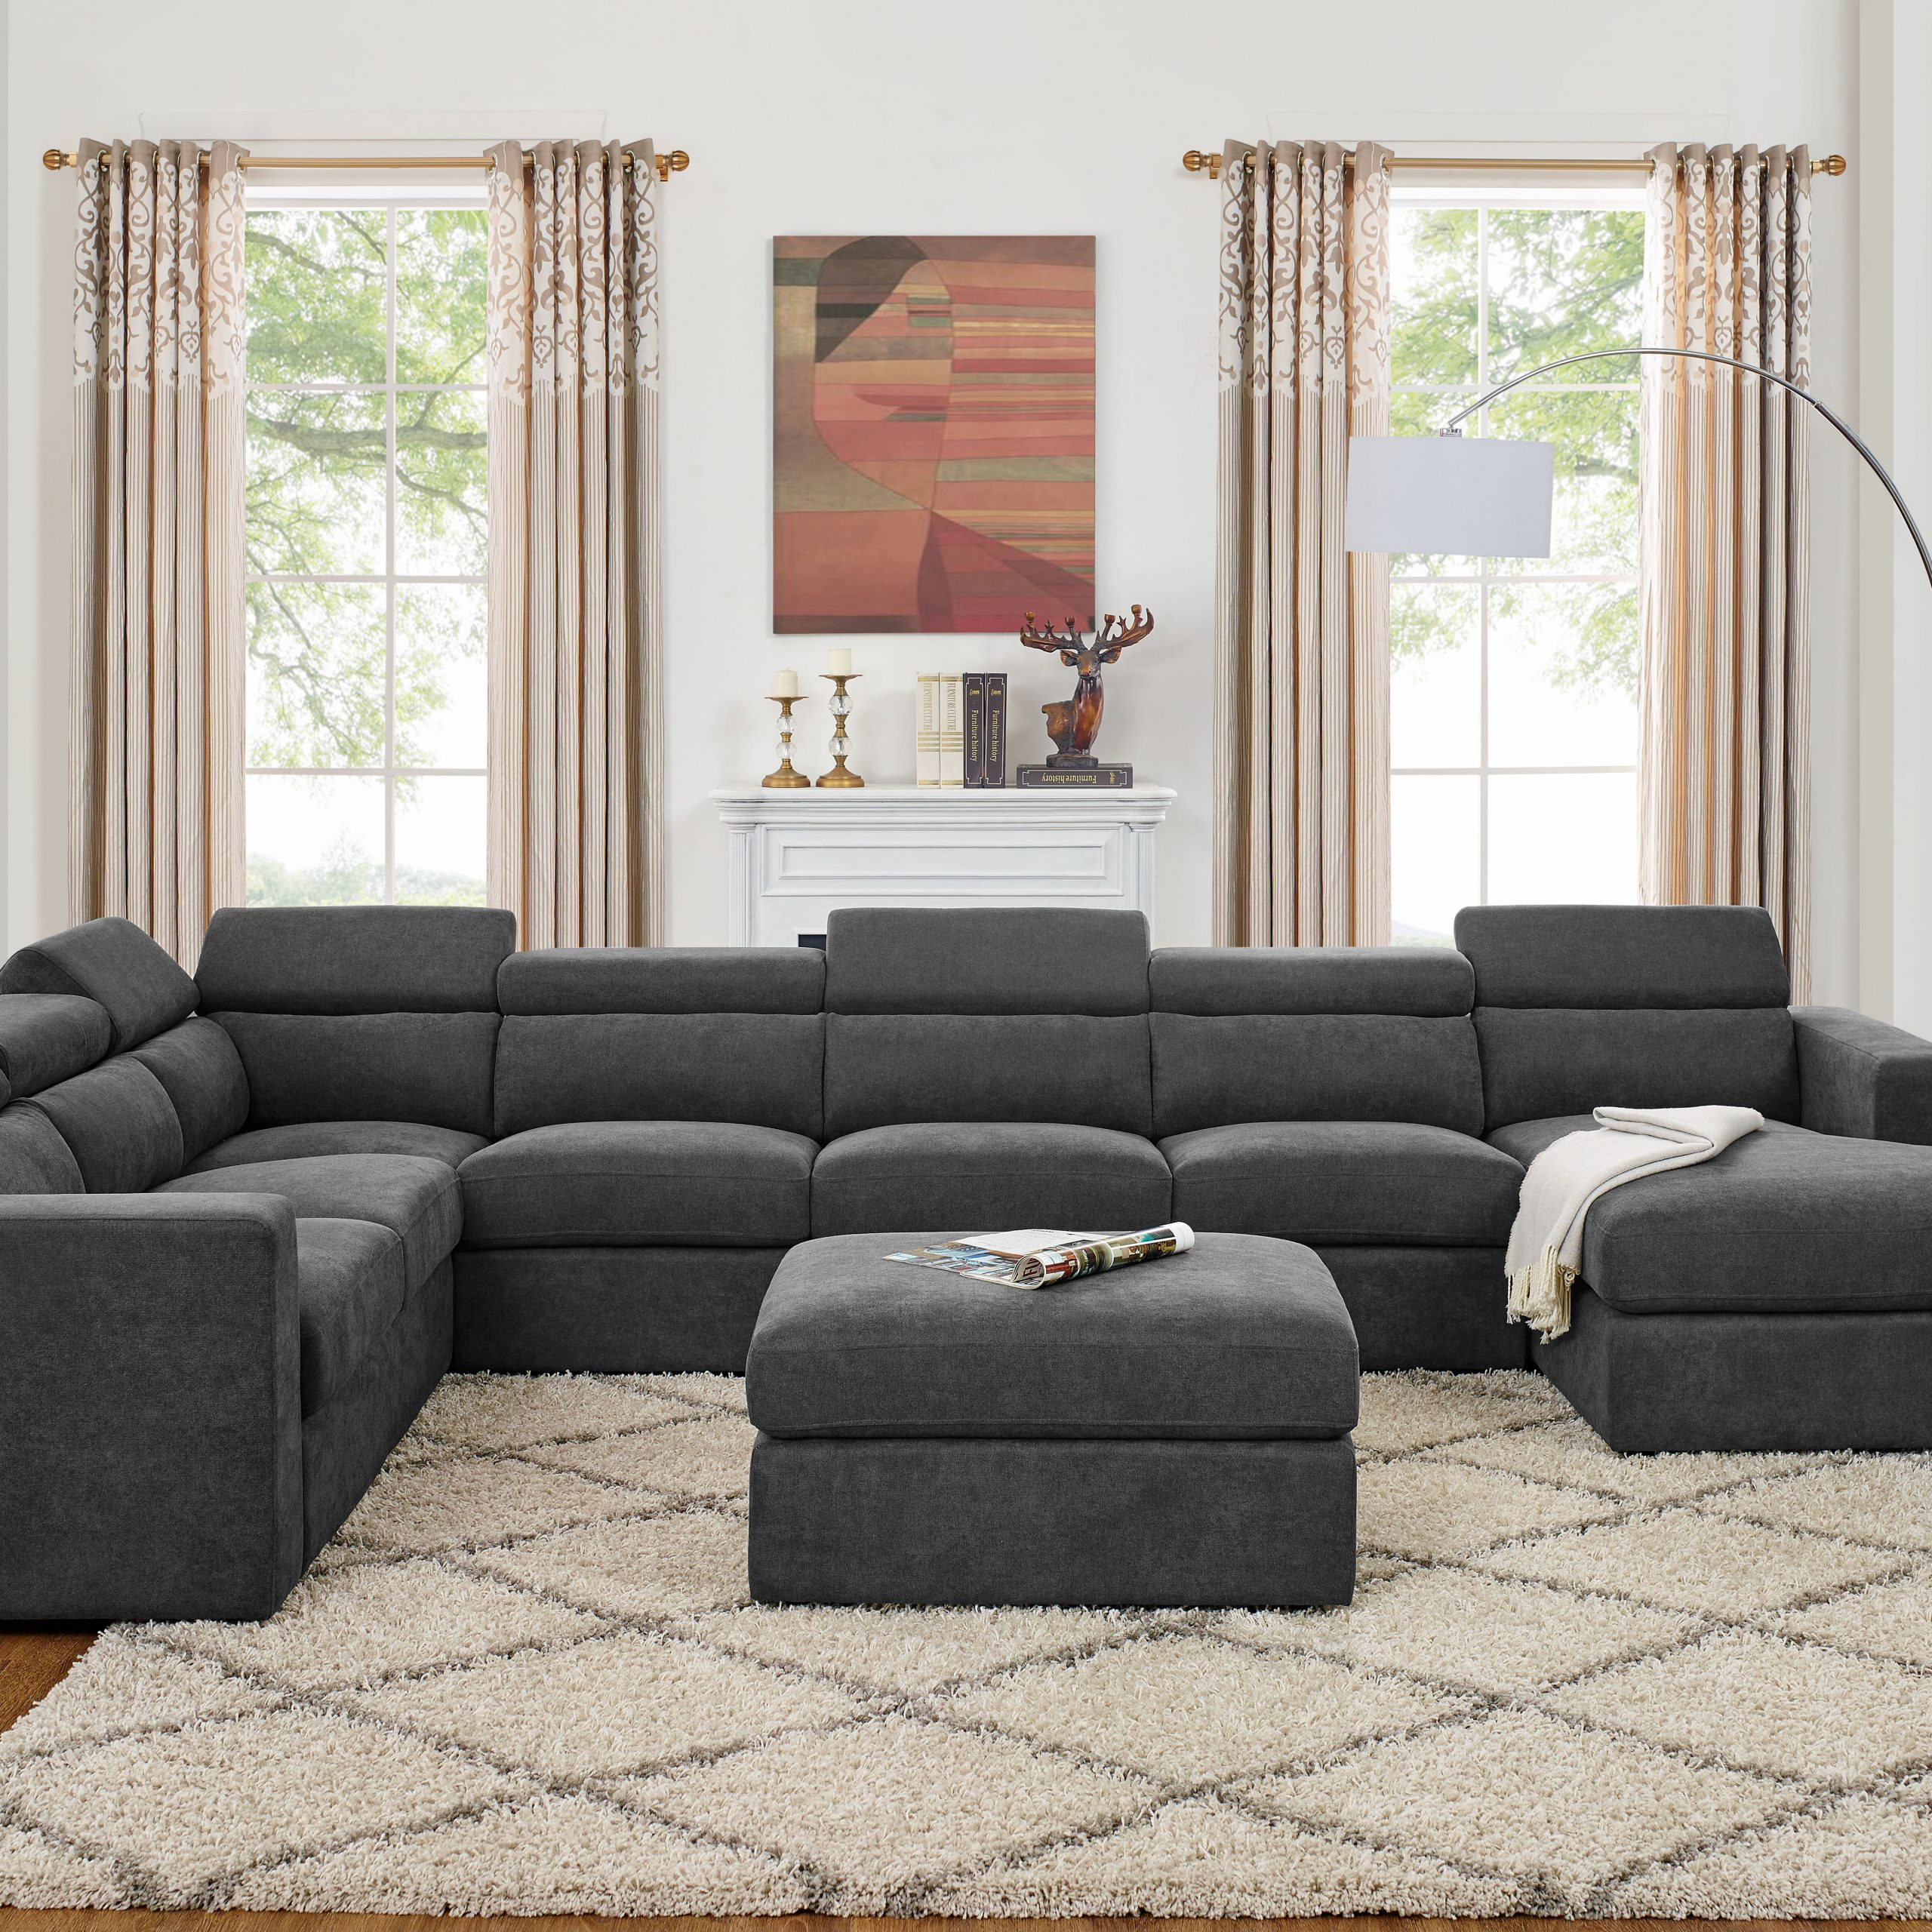 Large Comfortable Sectional Sofas 50 Extra Large Sectional Inside Extra Large Sectional Sofas (View 2 of 15)